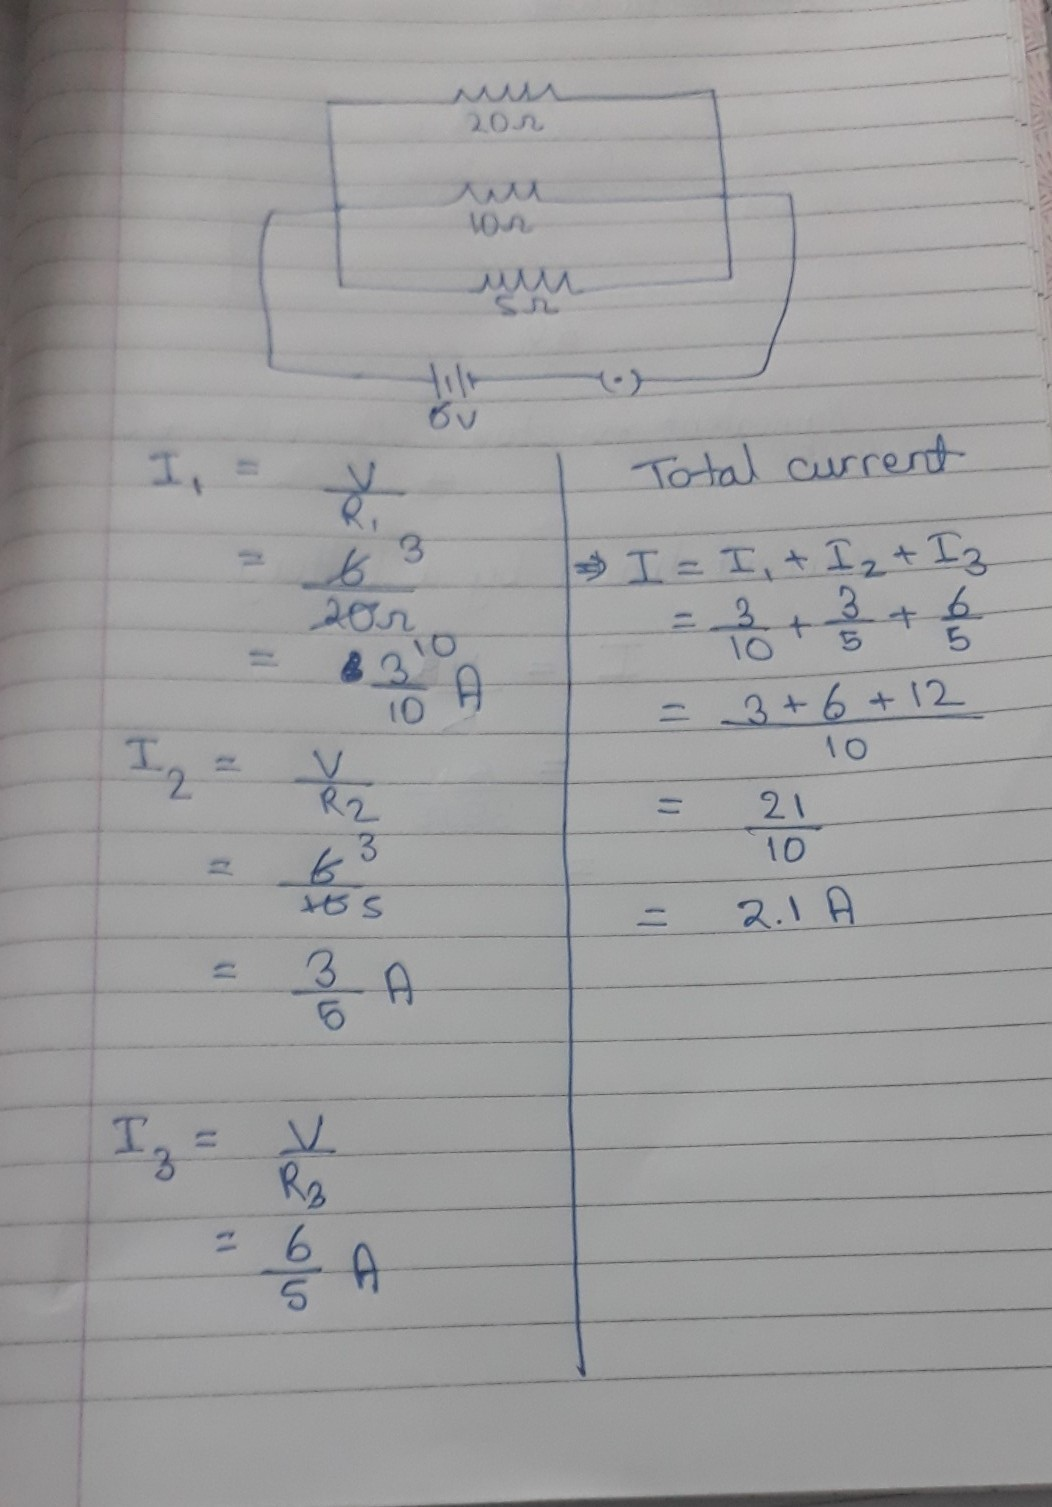 for the given circuit three resistors 20 ohms 10 ohms and ...